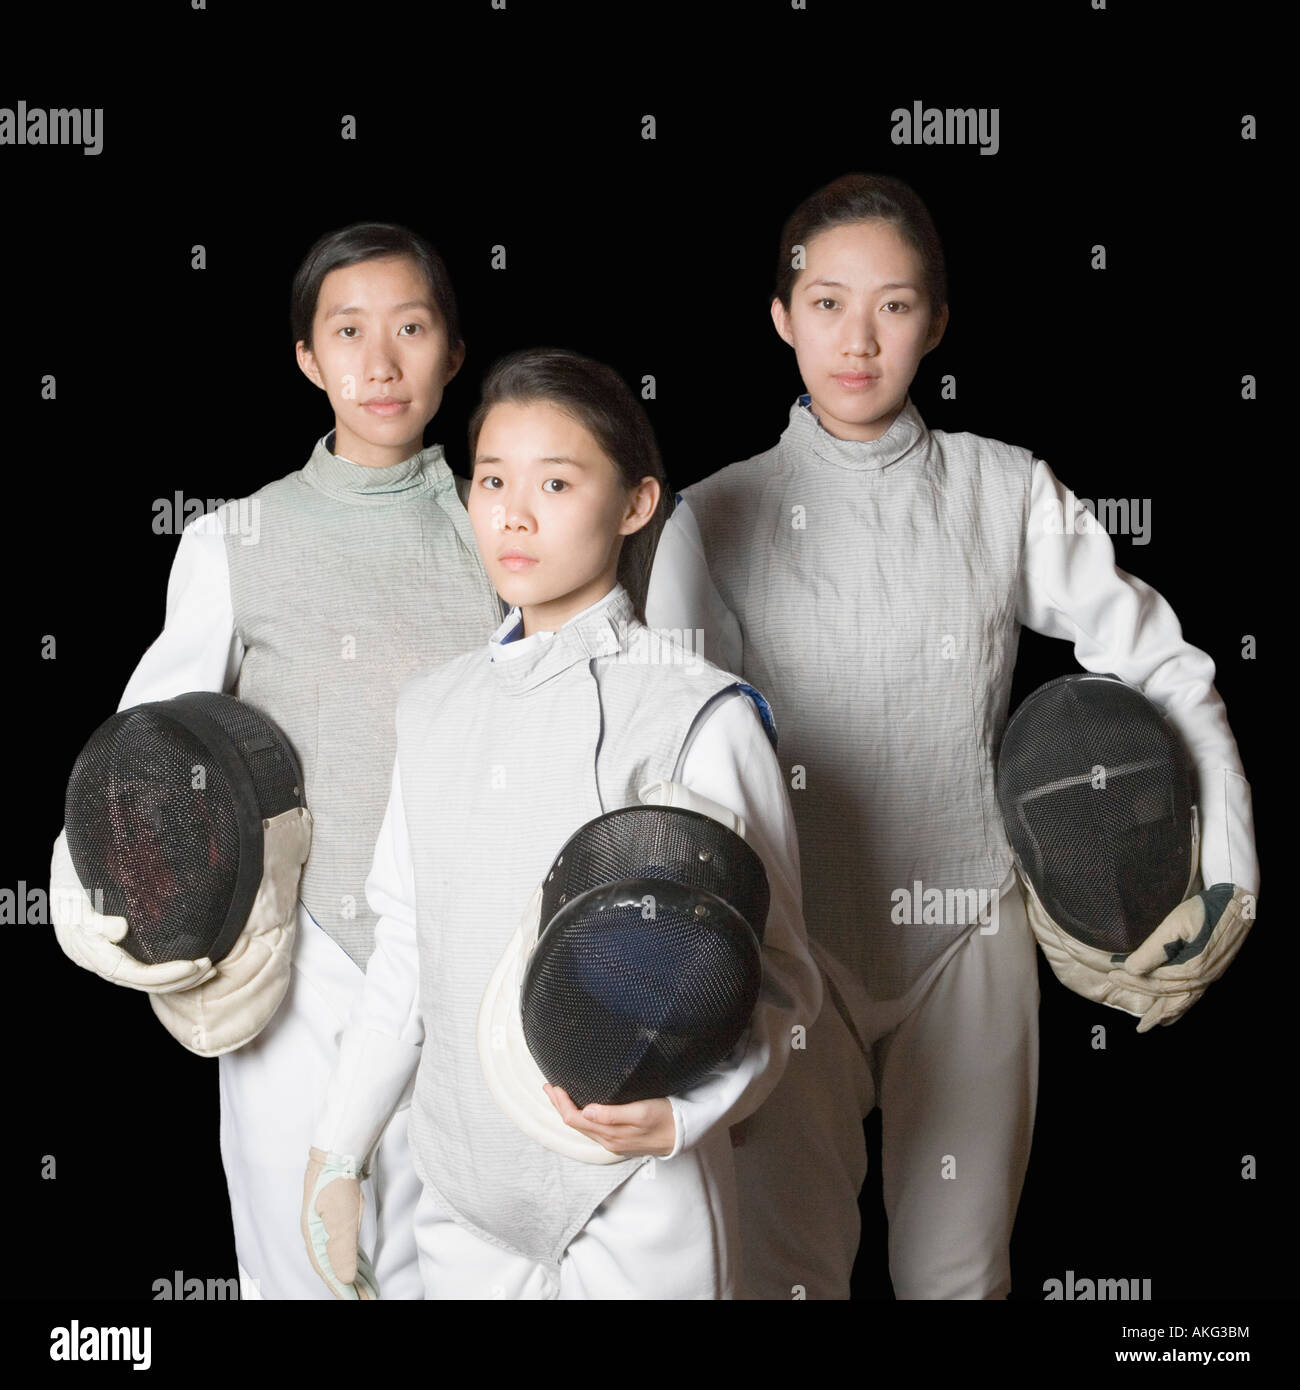 Portrait of three female fencers holding fencing masks - Stock Image